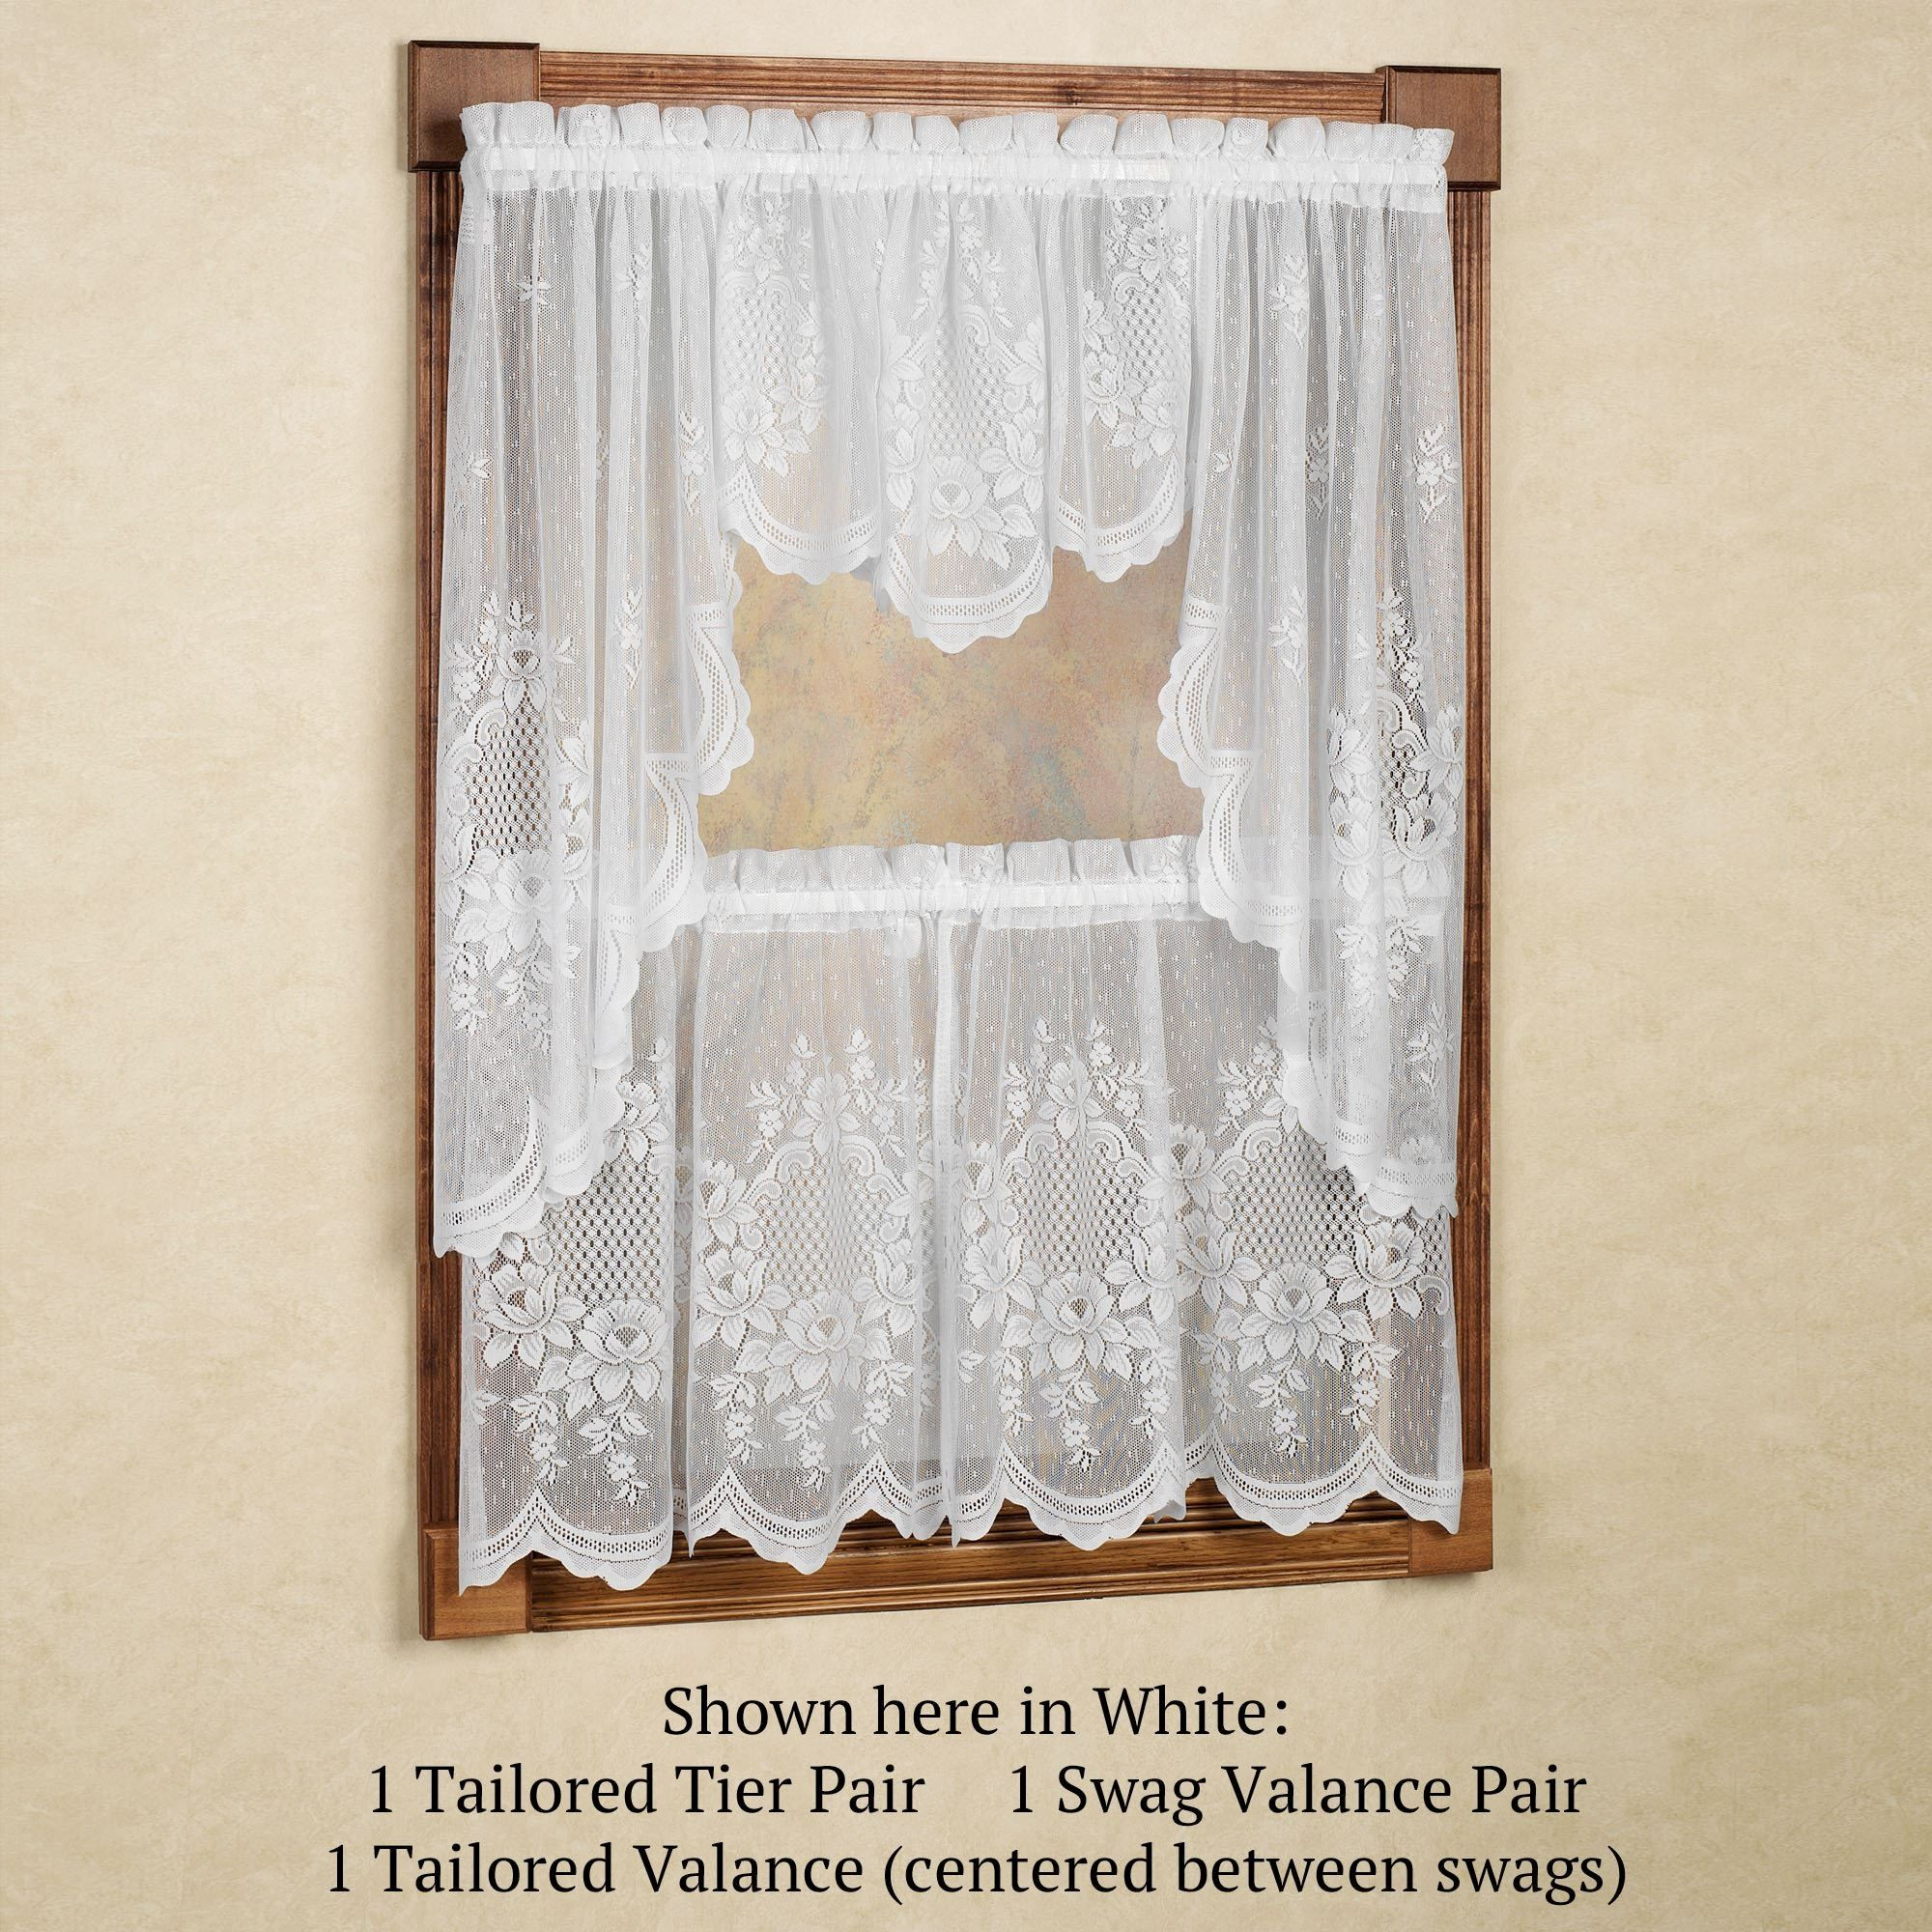 Lace Kitchen Window Curtains | http://realtag.info | Pinterest ... for Lace Kitchen Window Curtains  55nar